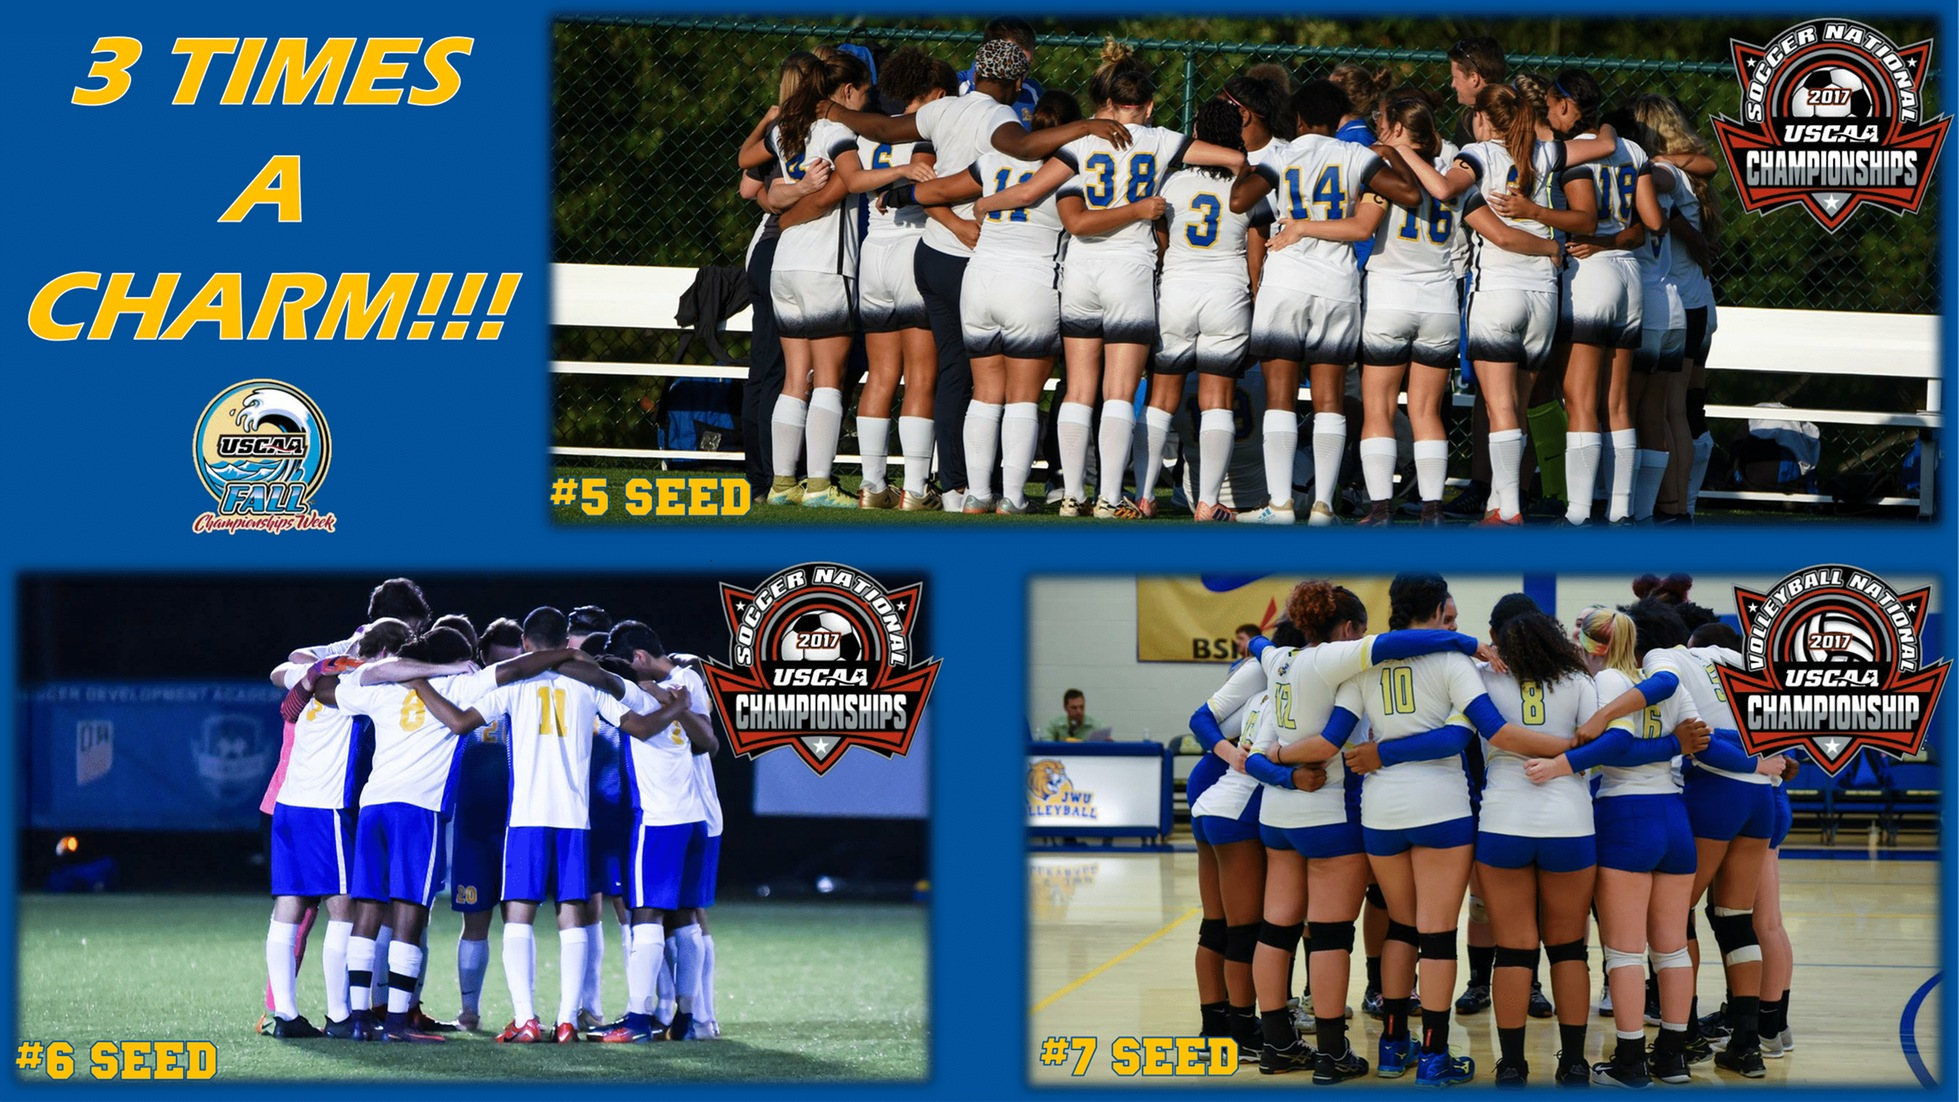 JWU Volleyball, Men's and Women's Soccer Earn Bids to USCAA Nationals